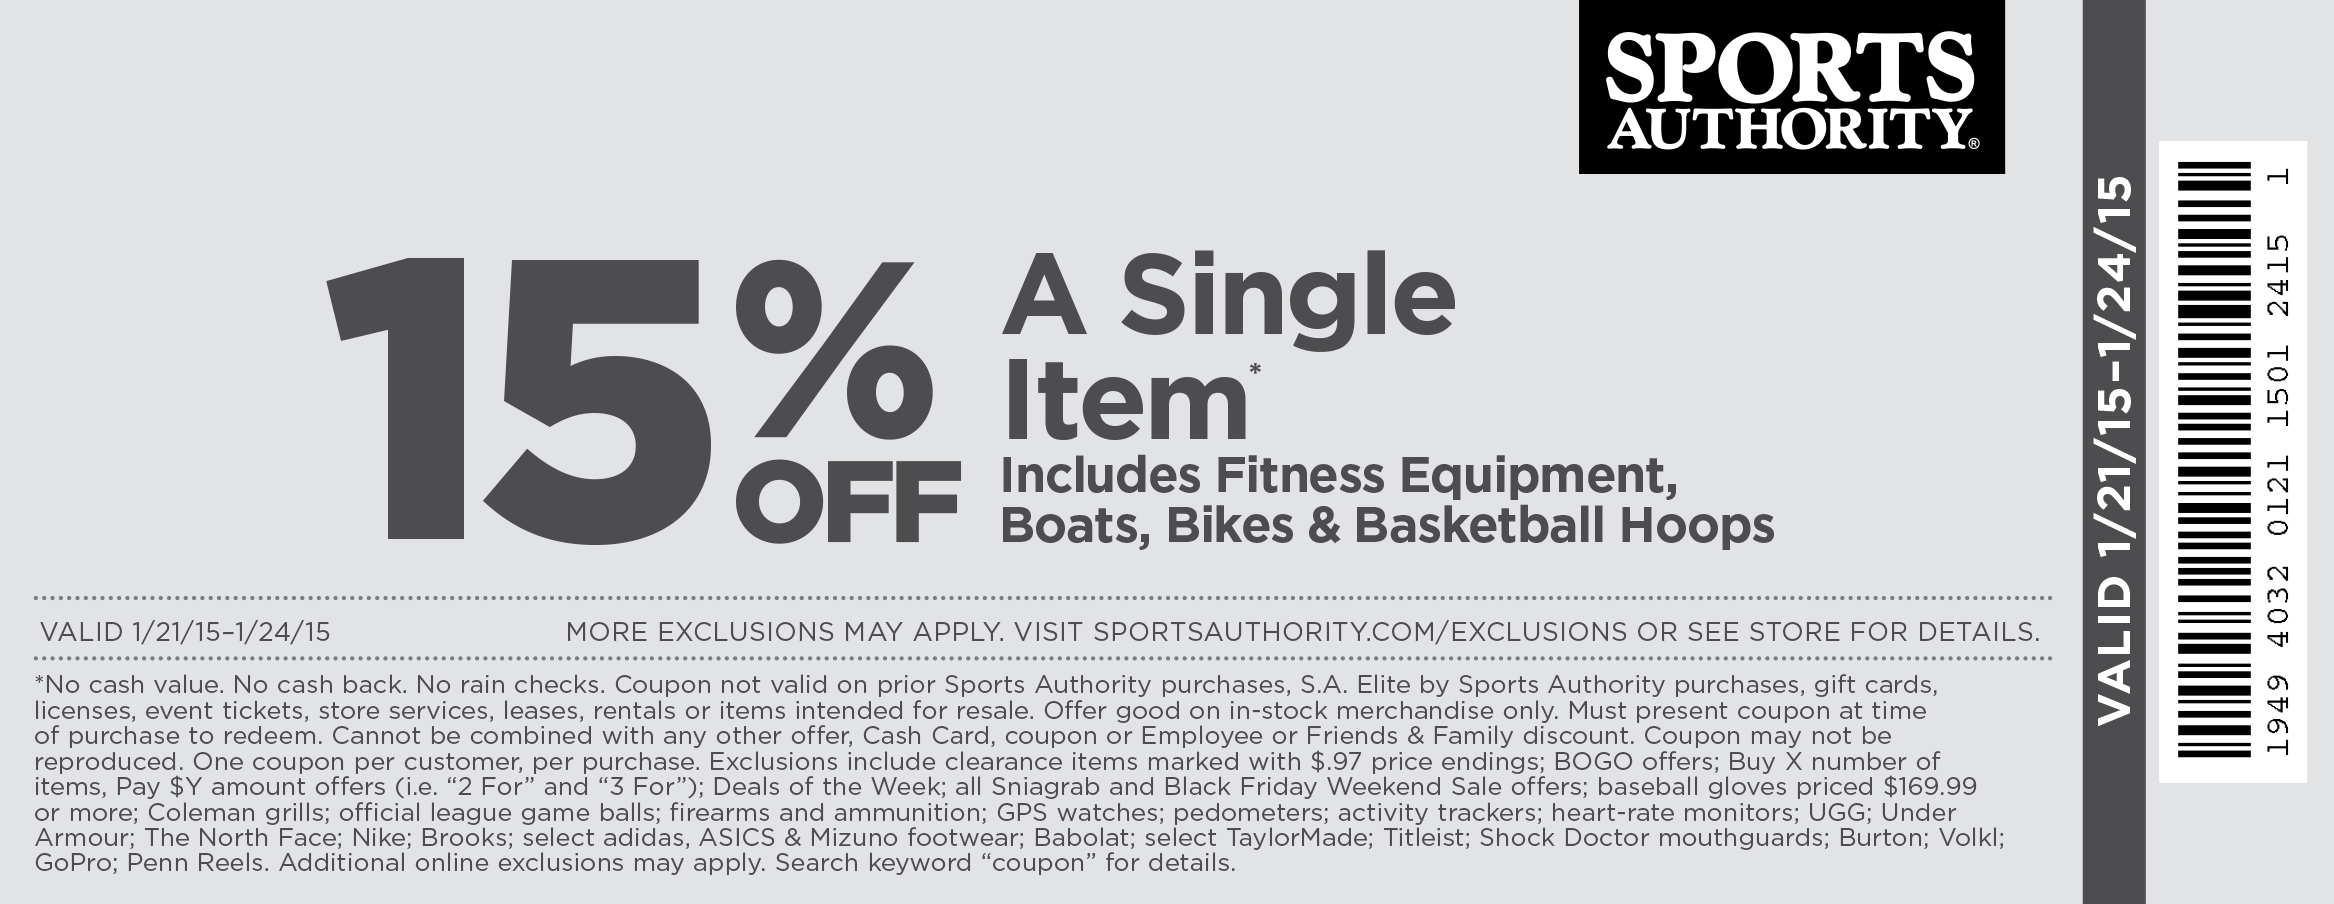 Sports Authority Coupon July 2017 15% off a single item at Sports Authority, ditto online